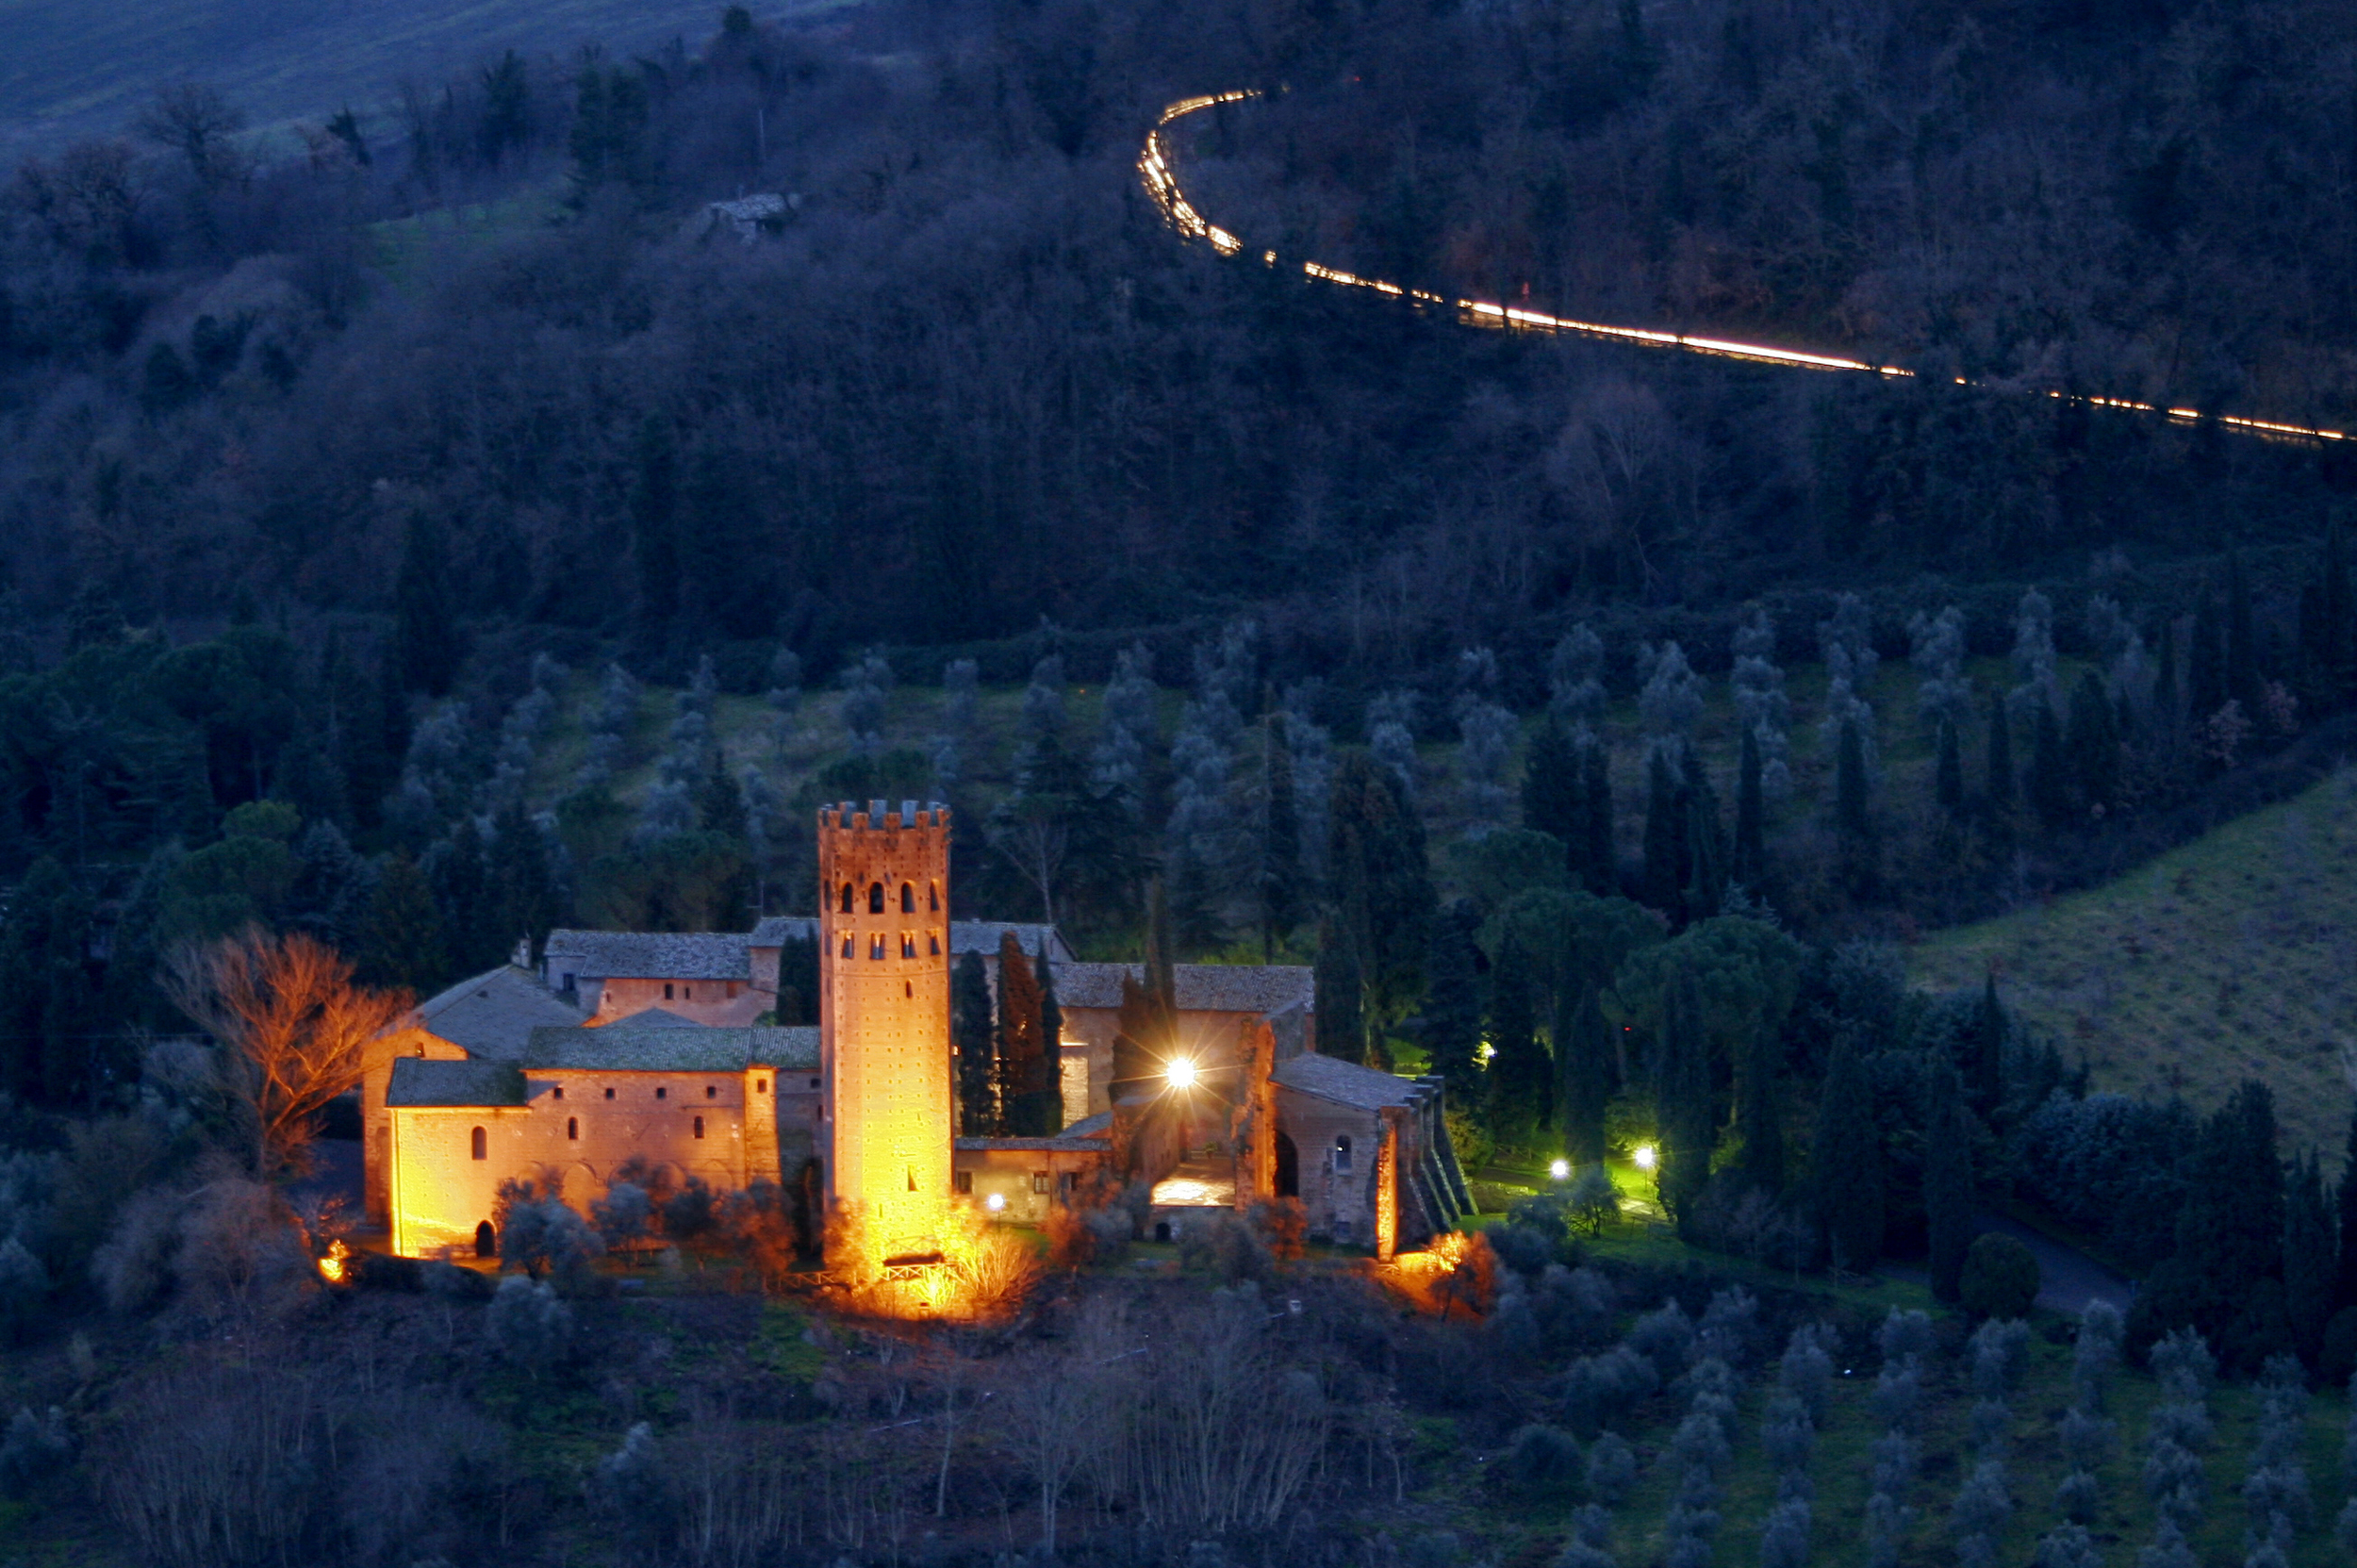 La Badia: the 11th century Benedictine monastery below the town, now a hotel (Photograph by Daniel Nystedt).